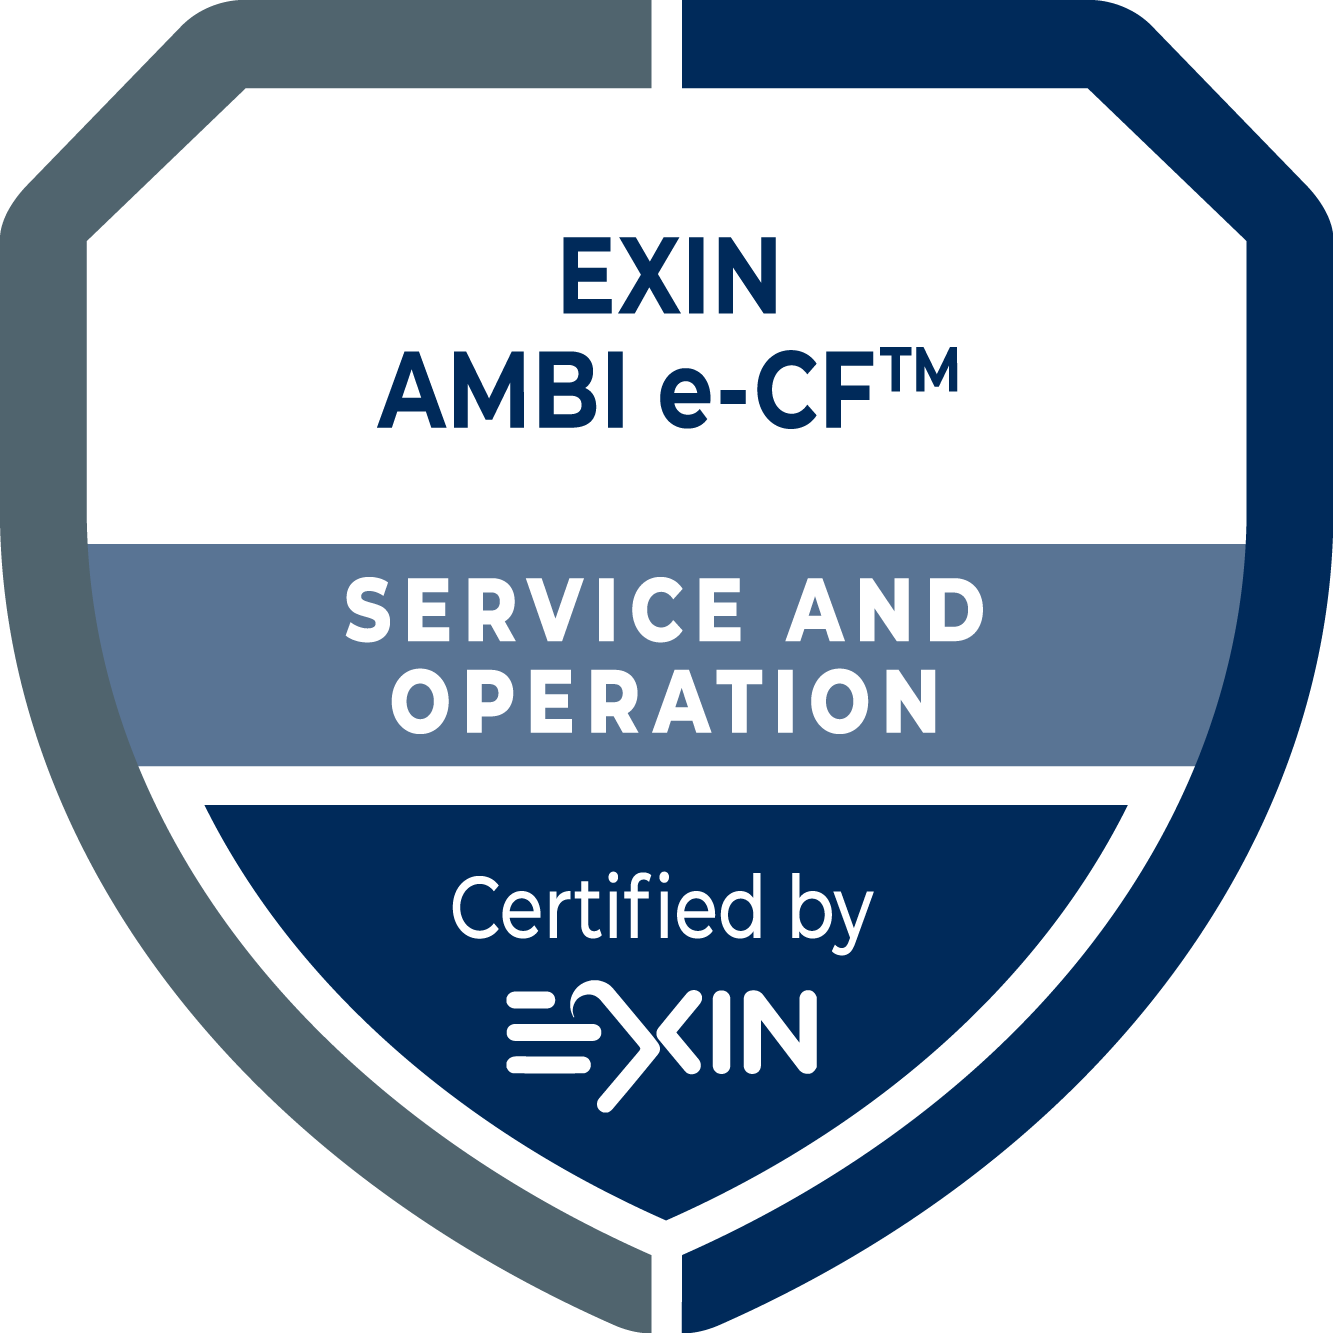 EXIN AMBI e-CF®: Service and Operation